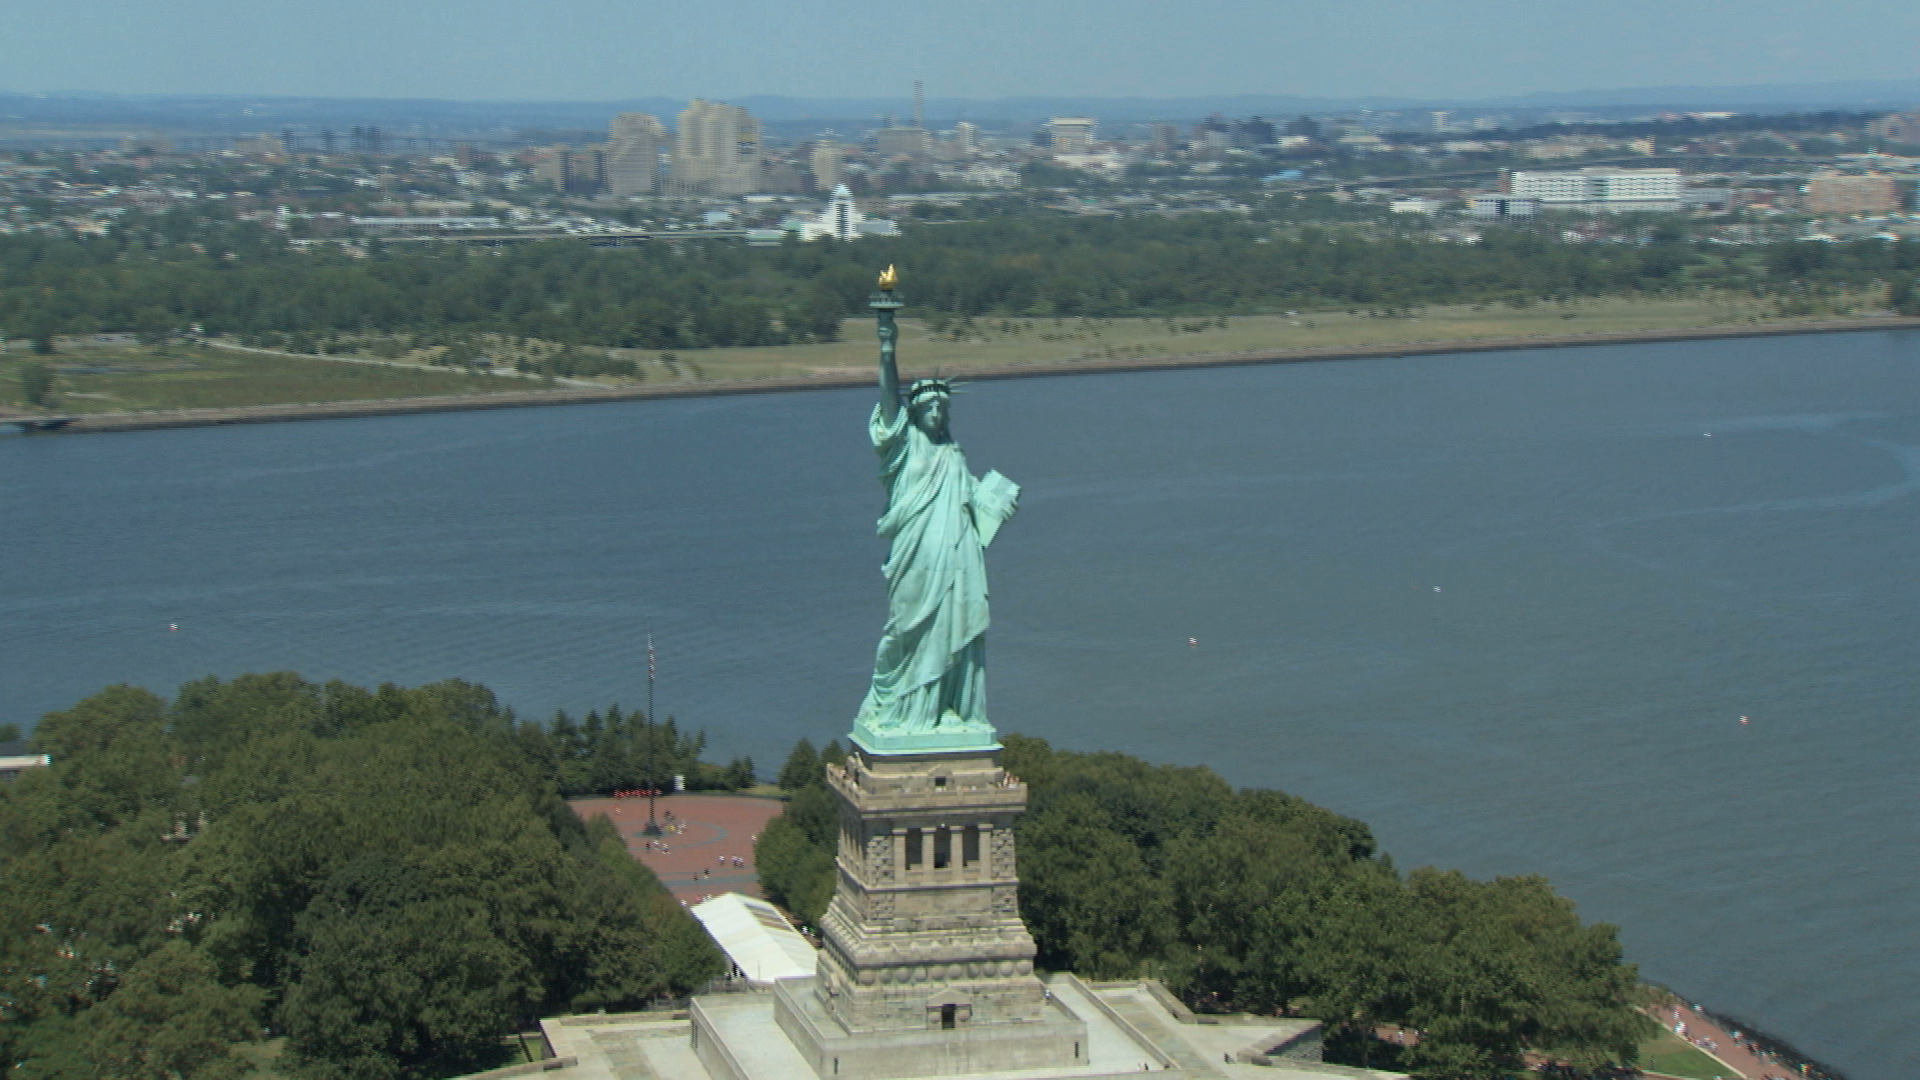 statue of liberty a lie essay The national parks service commissioned an inquire into the link between african americans and the statue of liberty the findings seem plausiblehowever, i'm not.